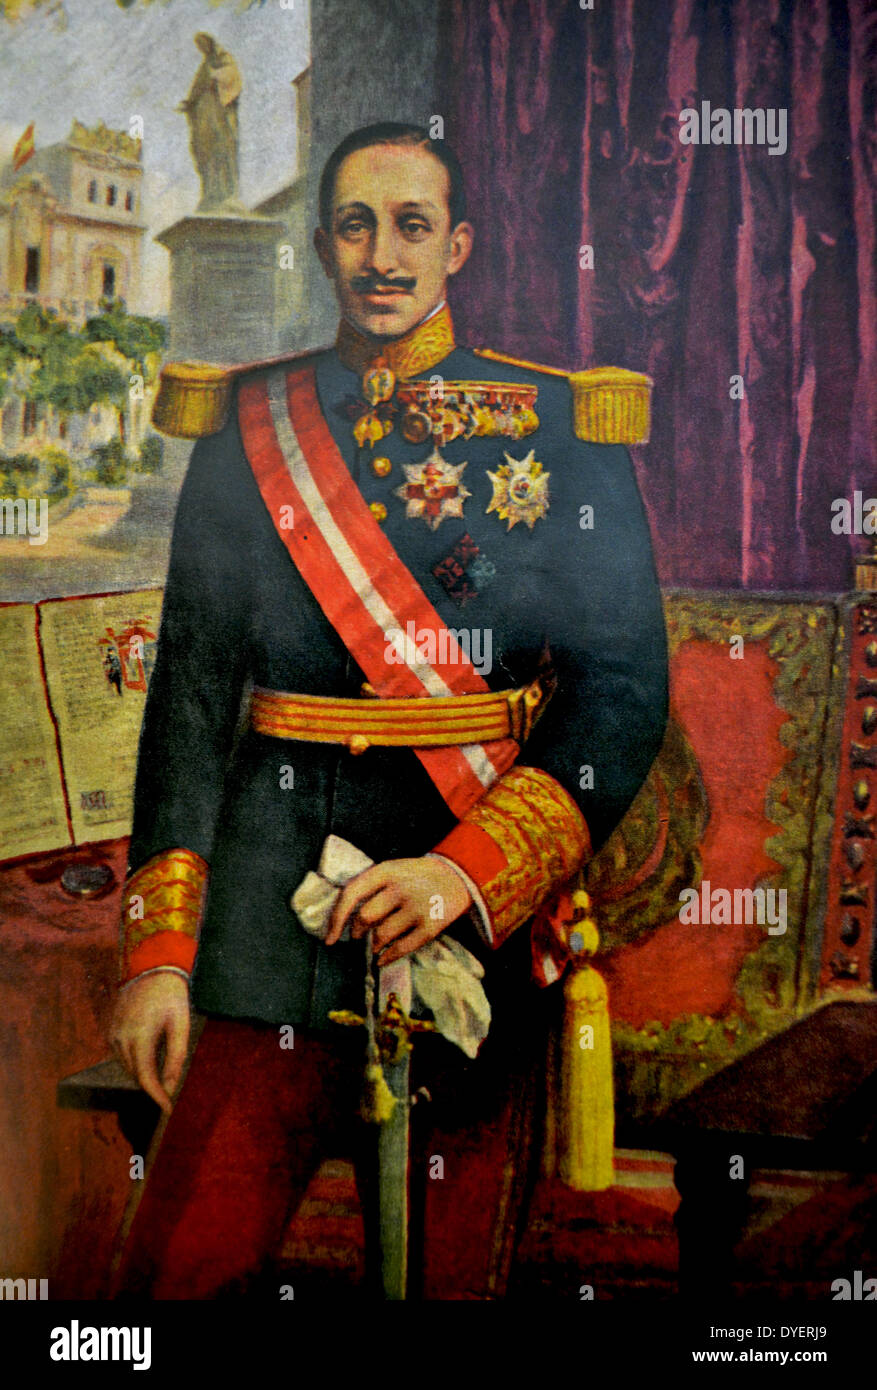 Alfonso XIII  17 May 1886 – 28 February 1941) was King of Spain from 1886 until 1931. - Stock Image